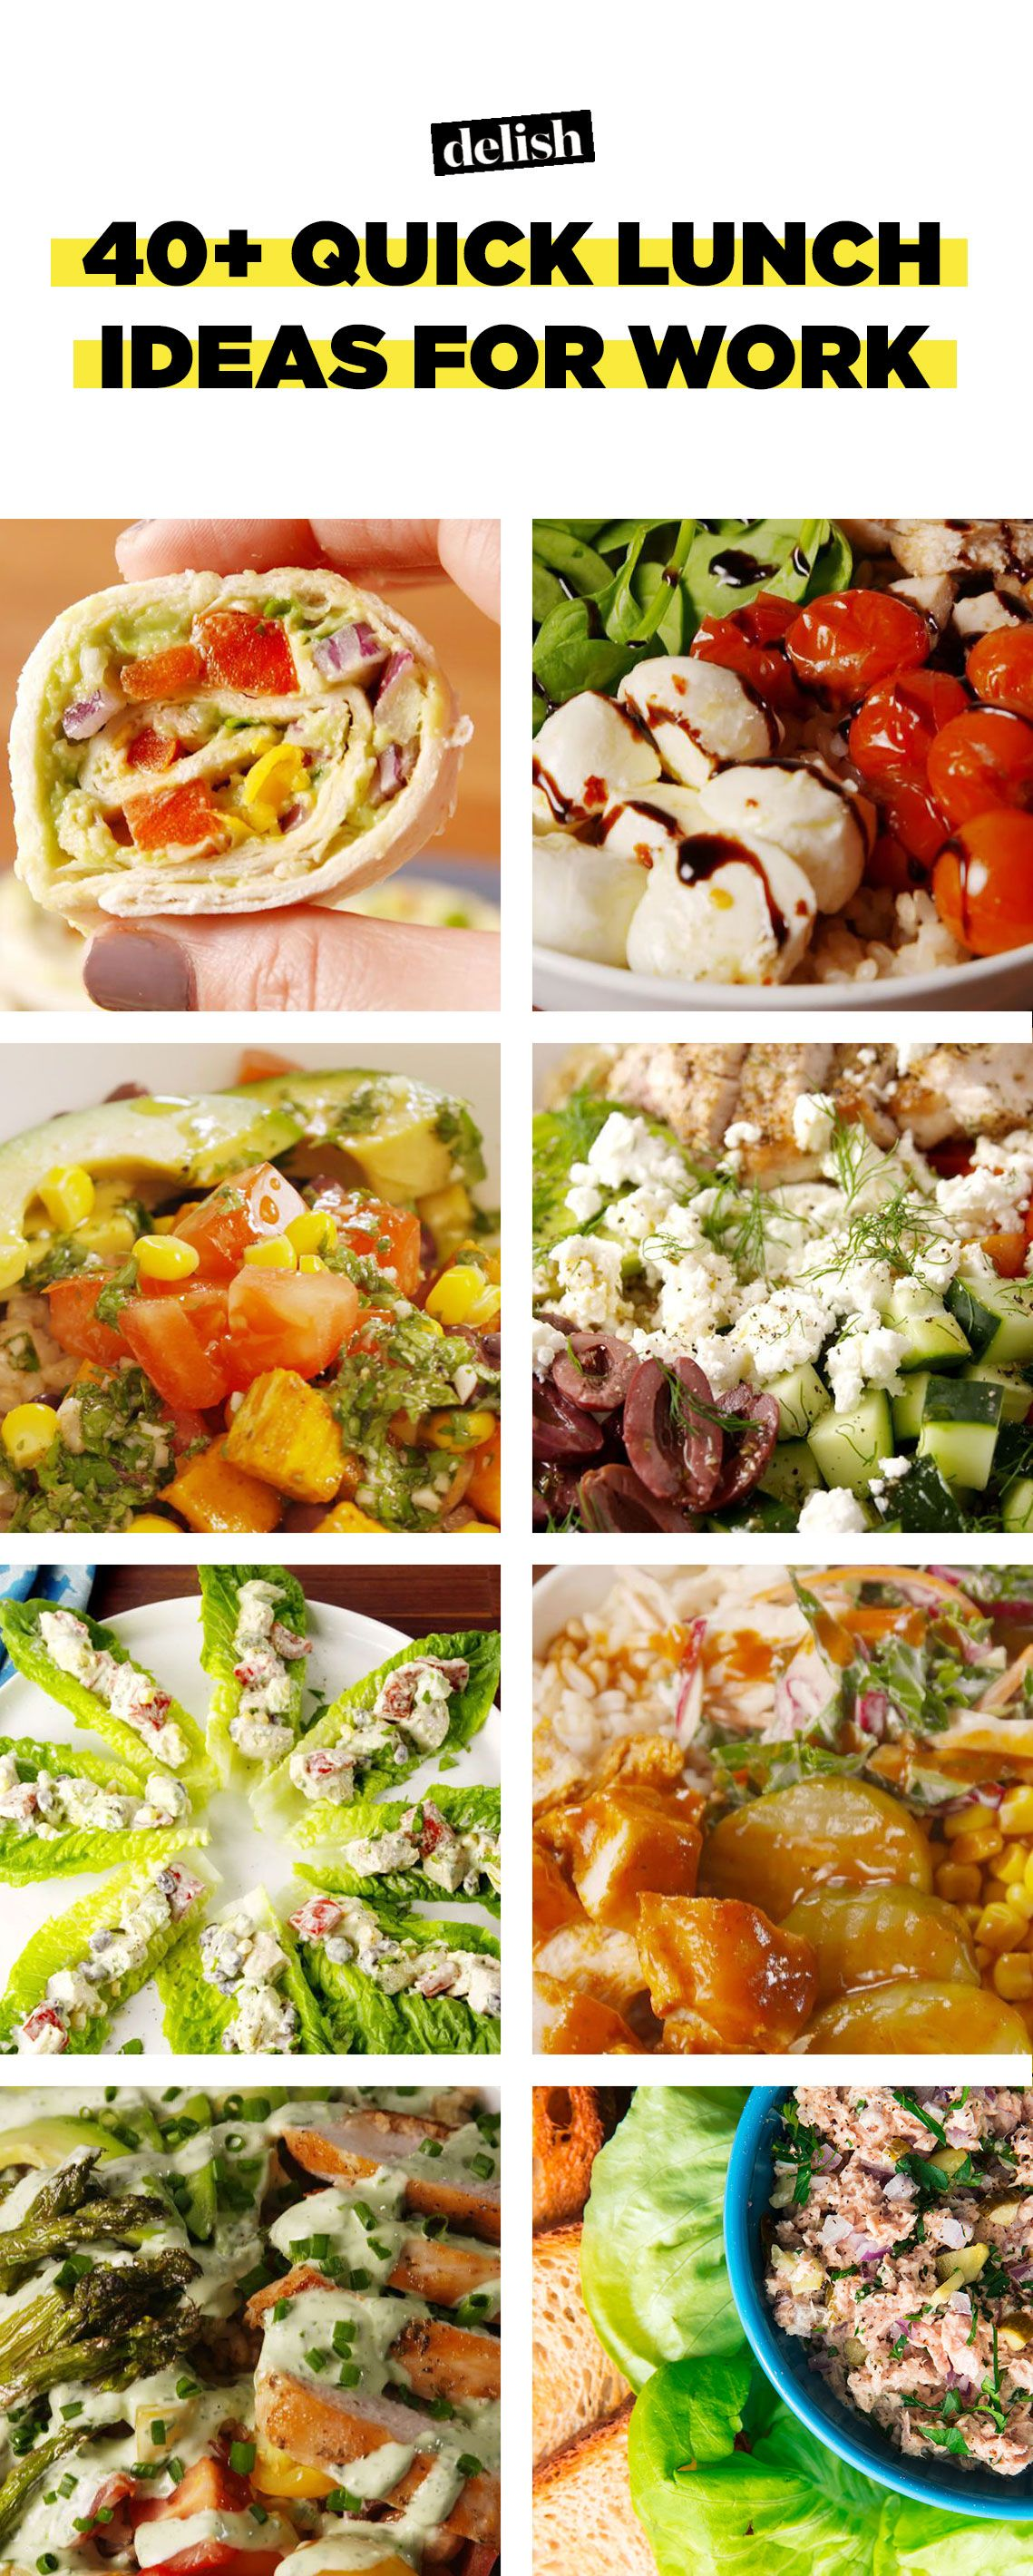 40 quick lunch ideas for work recipes for fast work lunches 40 quick lunch ideas for work recipes for fast work lunches delish forumfinder Choice Image